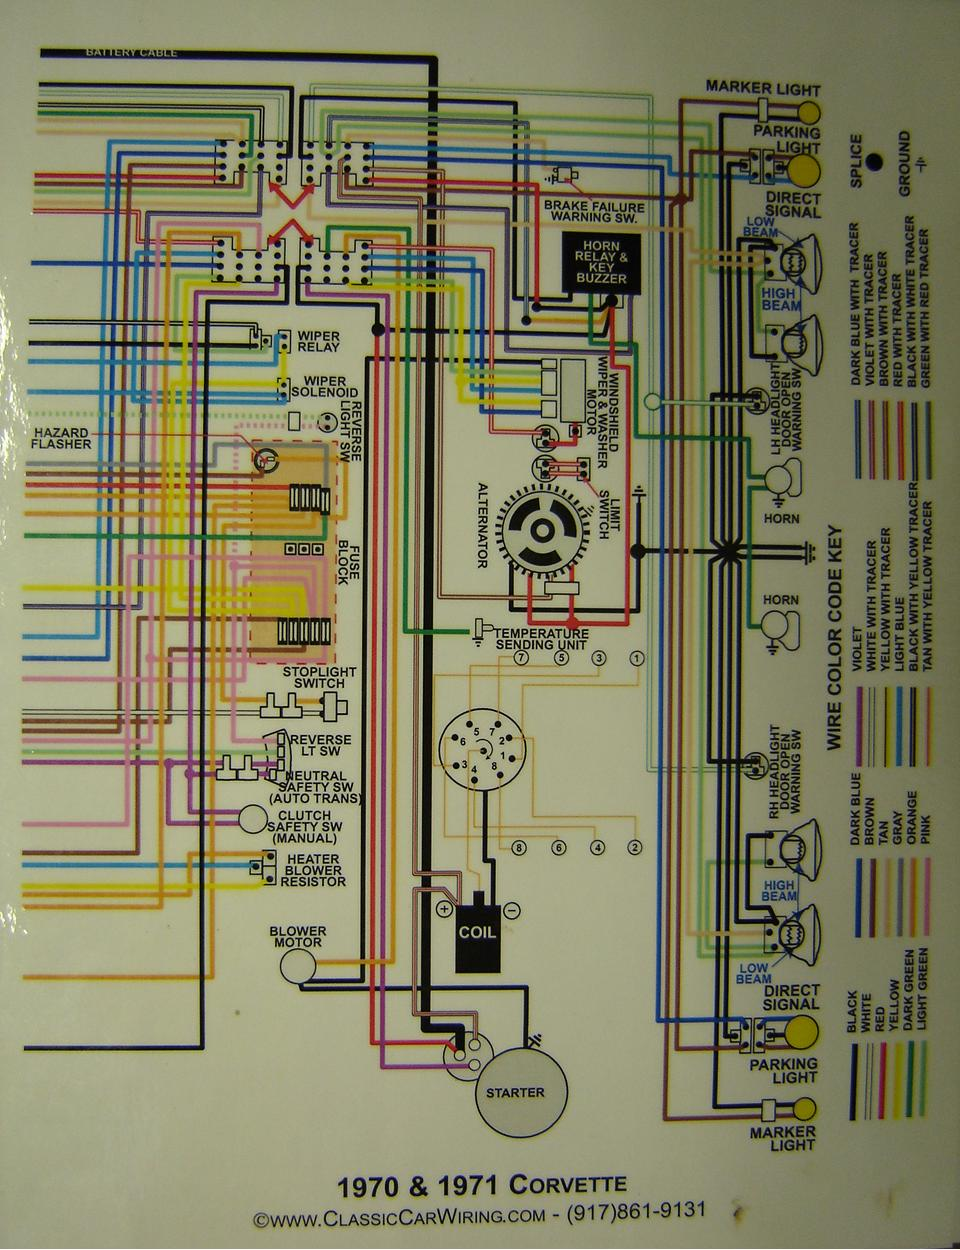 "DIAGRAM] 1972 Chevy Chevelle Wiring Diagram FULL Version HD ... on john deere voltage regulator wiring, john deere tractor wiring, john deere fuse box diagram, john deere 42"" deck diagrams, john deere repair diagrams, john deere 3020 diagram, john deere starters diagrams, john deere 310e backhoe problems, john deere power beyond diagram, john deere fuel gauge wiring, john deere gt235 diagram, john deere cylinder head, john deere 345 diagram, john deere electrical diagrams, john deere riding mower diagram, john deere 212 diagram, john deere chassis, john deere fuel system diagram, john deere sabre mower belt diagram, john deere rear end diagrams,"